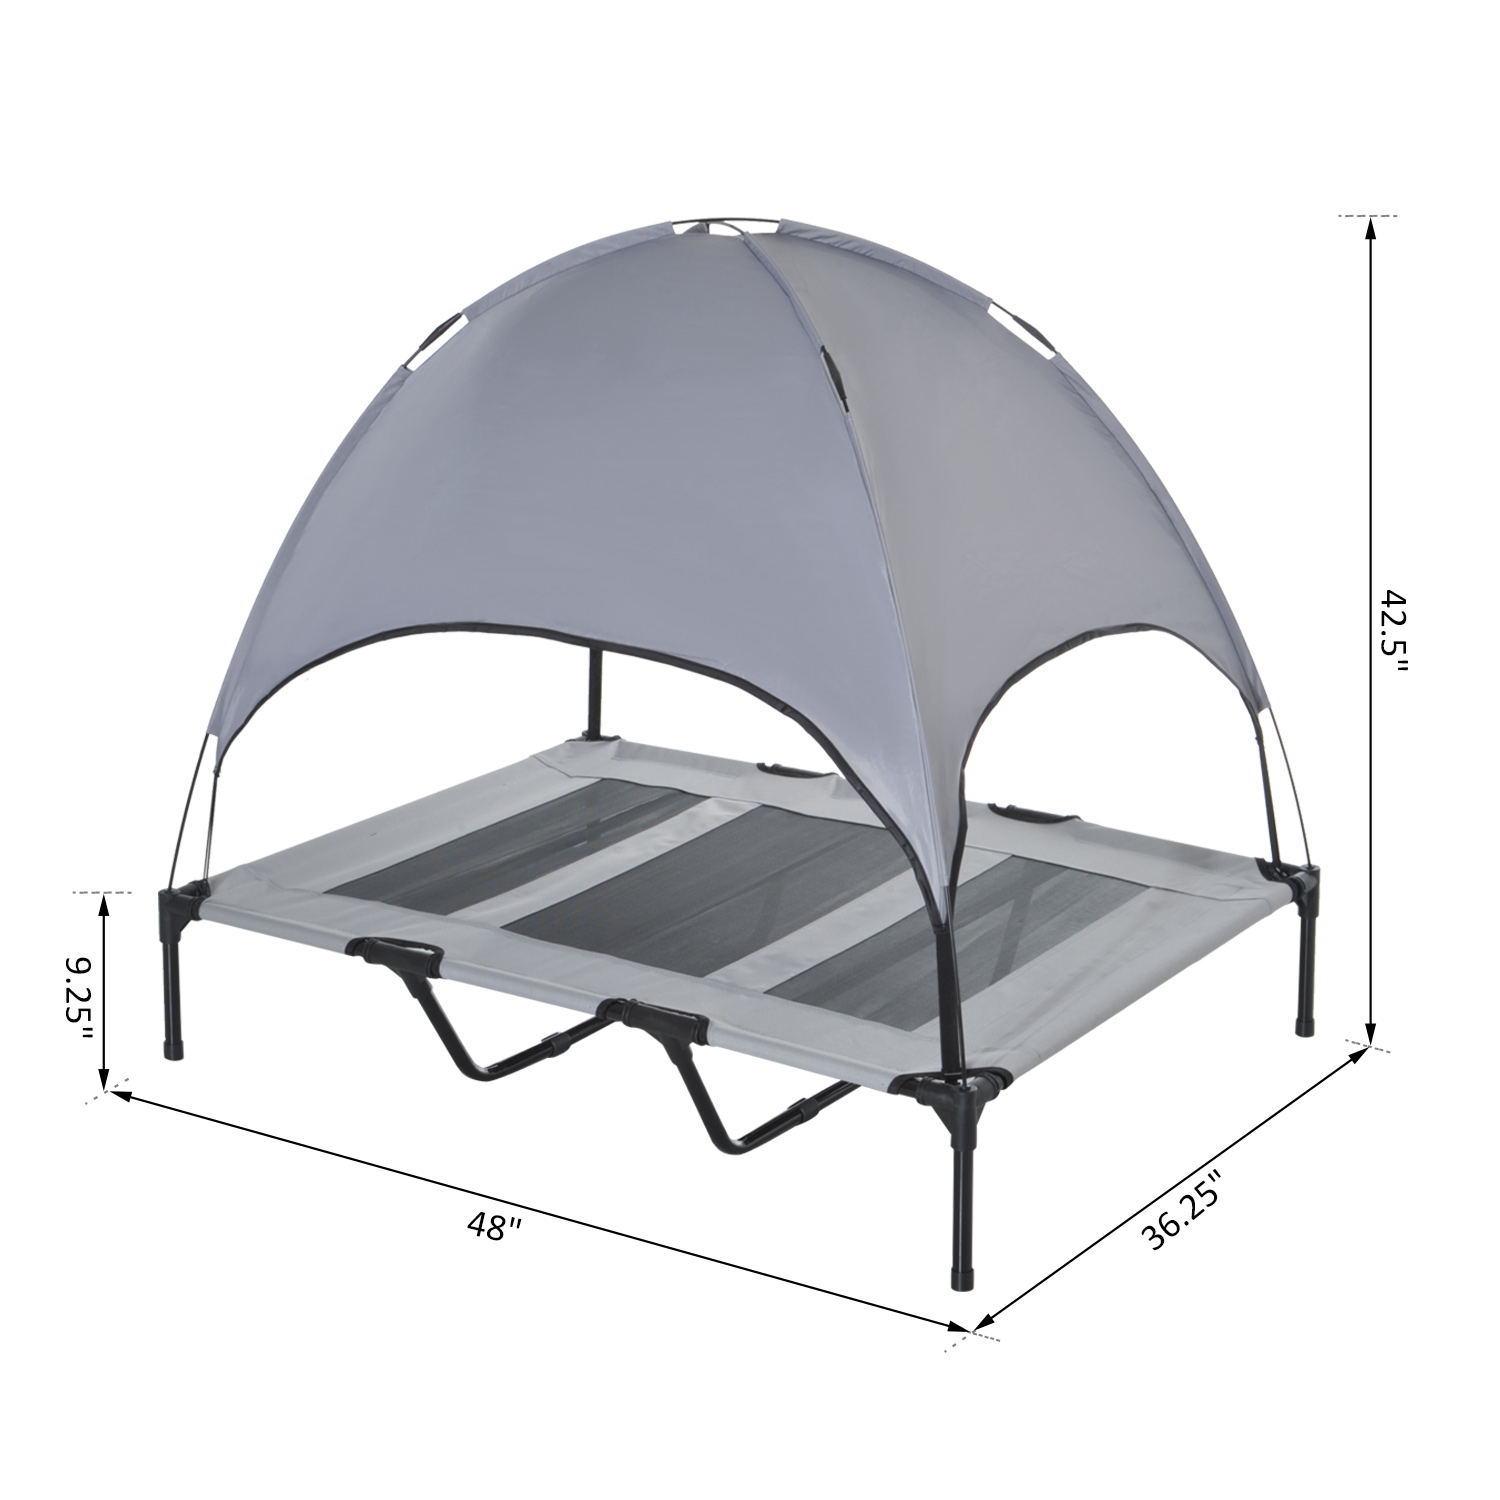 PawHut-Elevated-Pet-Bed-Dog-Foldable-Cot-Tent-Canopy-Instant-Shelter-Outdoor thumbnail 20